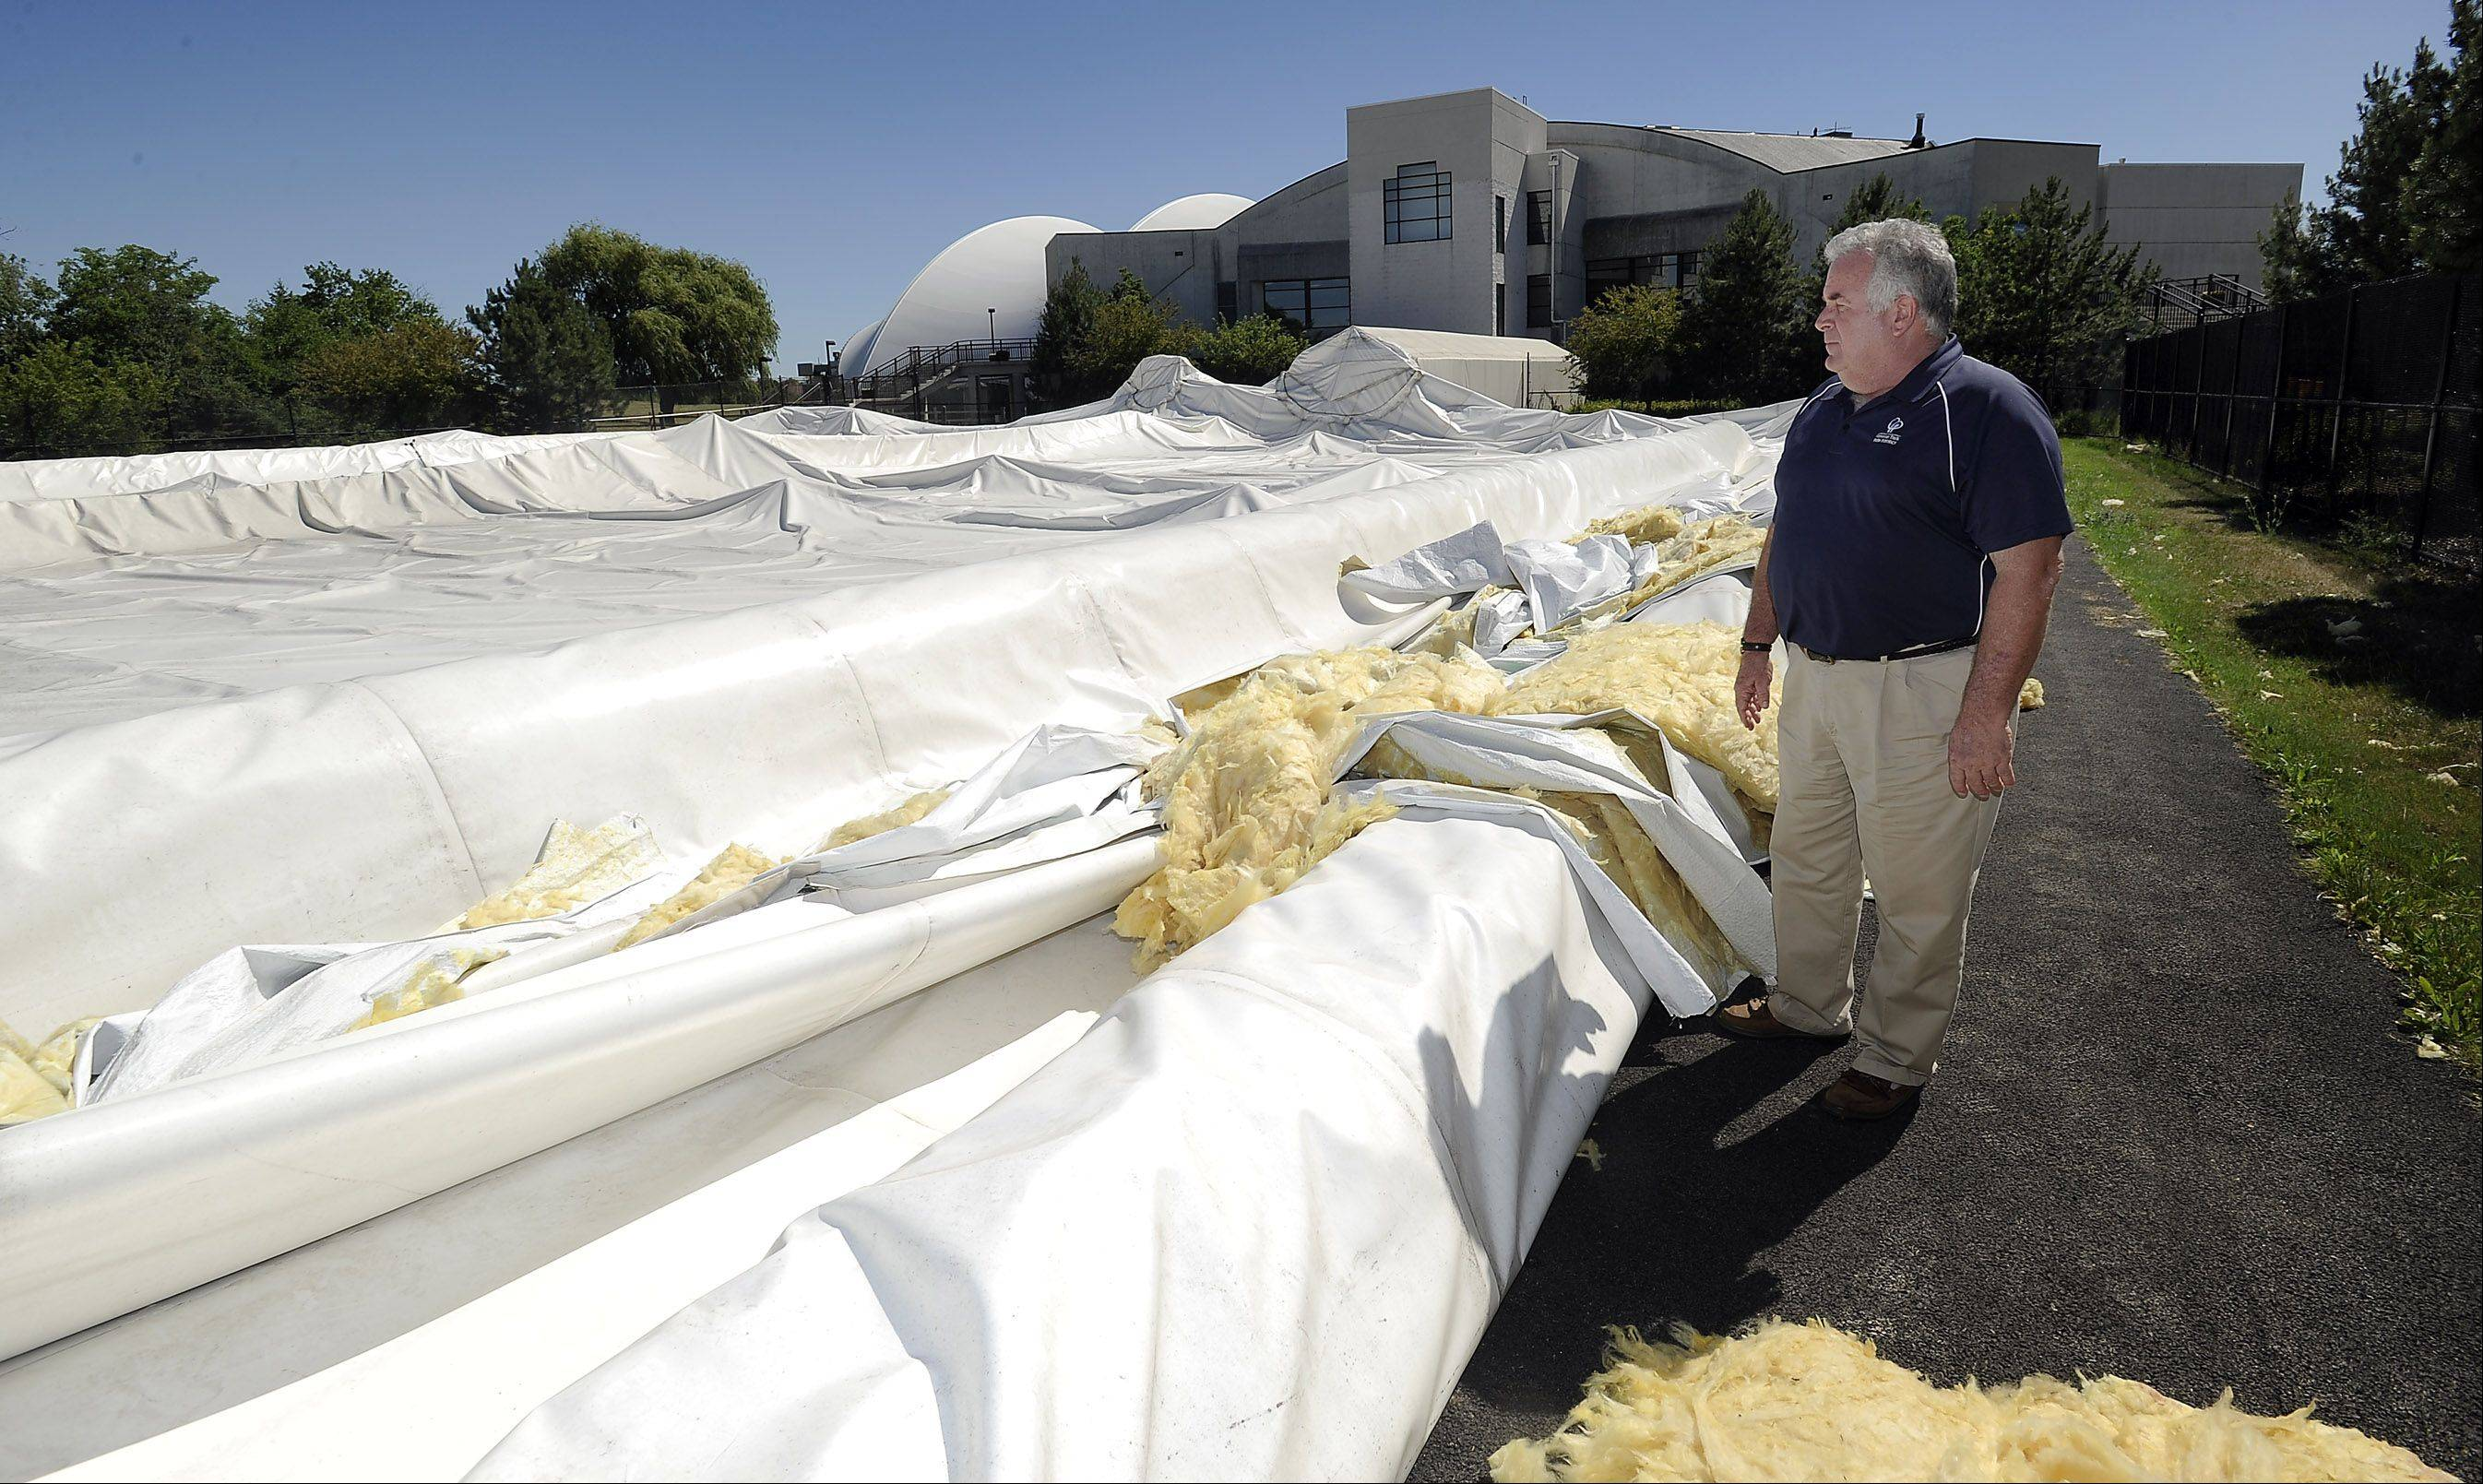 Bob O'Brien, the Hanover Park Park District superintendent of parks, surveys the inflatable tennis dome after it collapsed in June 2012. District officials recently agreed to issue $500,000 in bonds for a replacement dome.